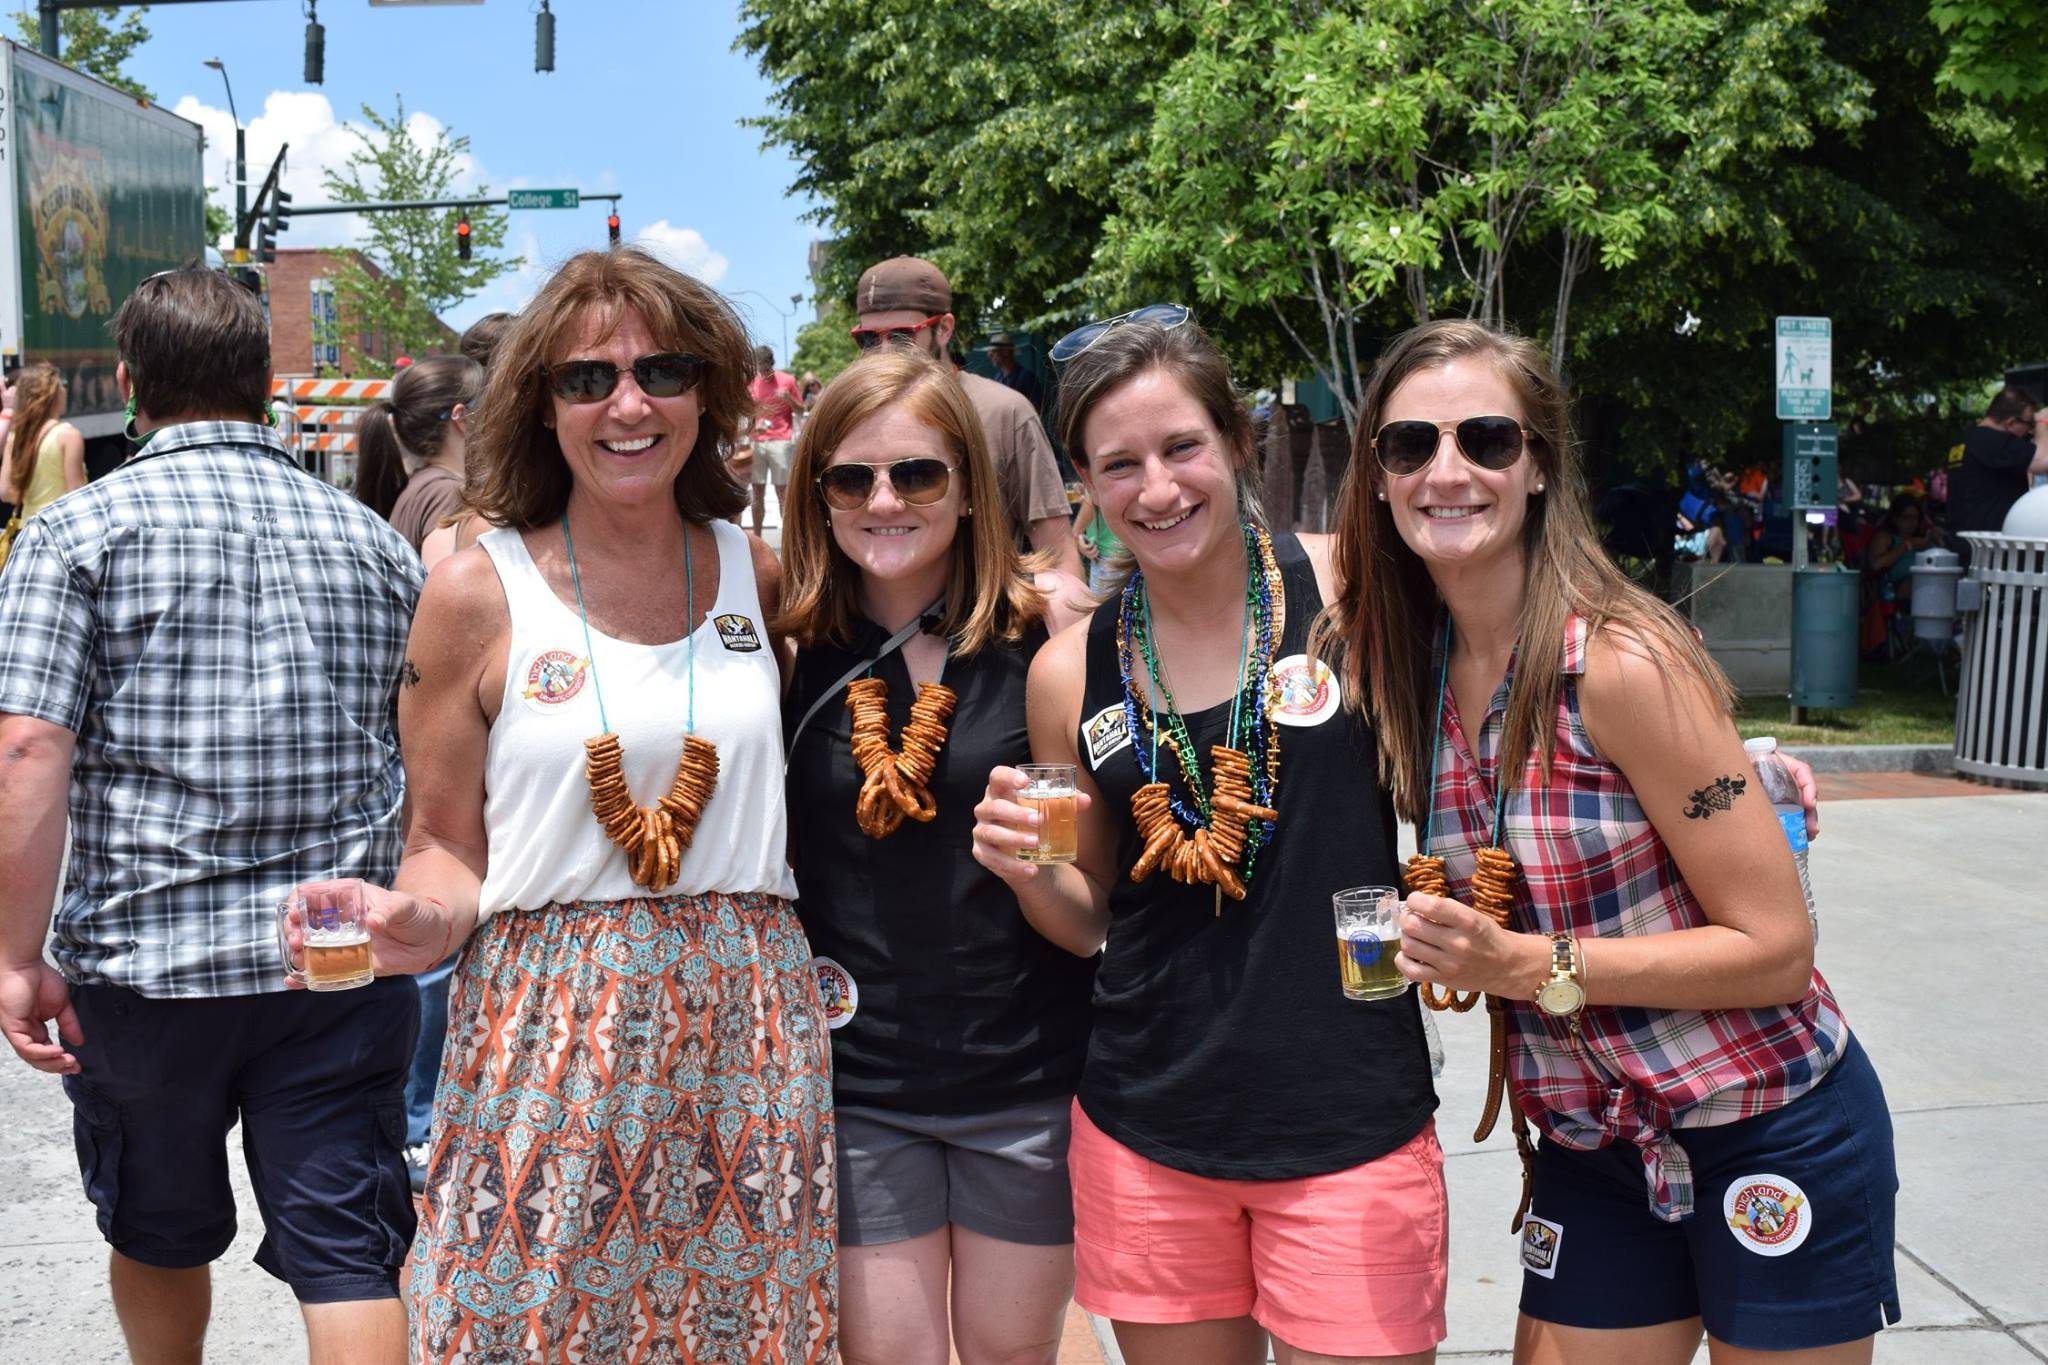 Beer city festival footer2 local flavor avl visit explore beer asheville